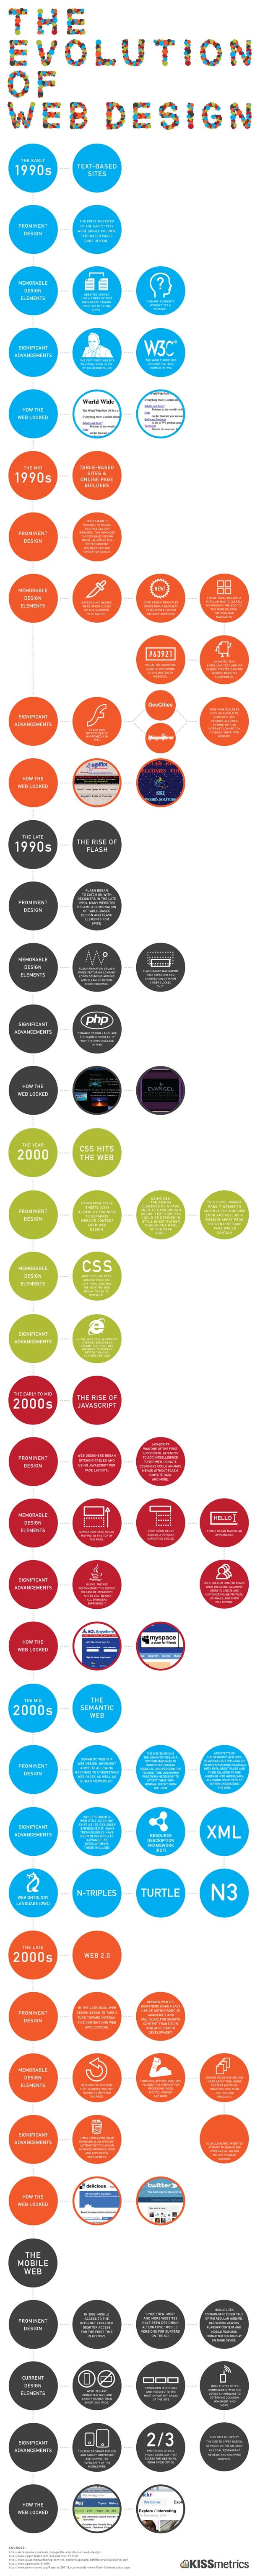 the evolution of web design infographic The Evolution of Web Design [Infographic]